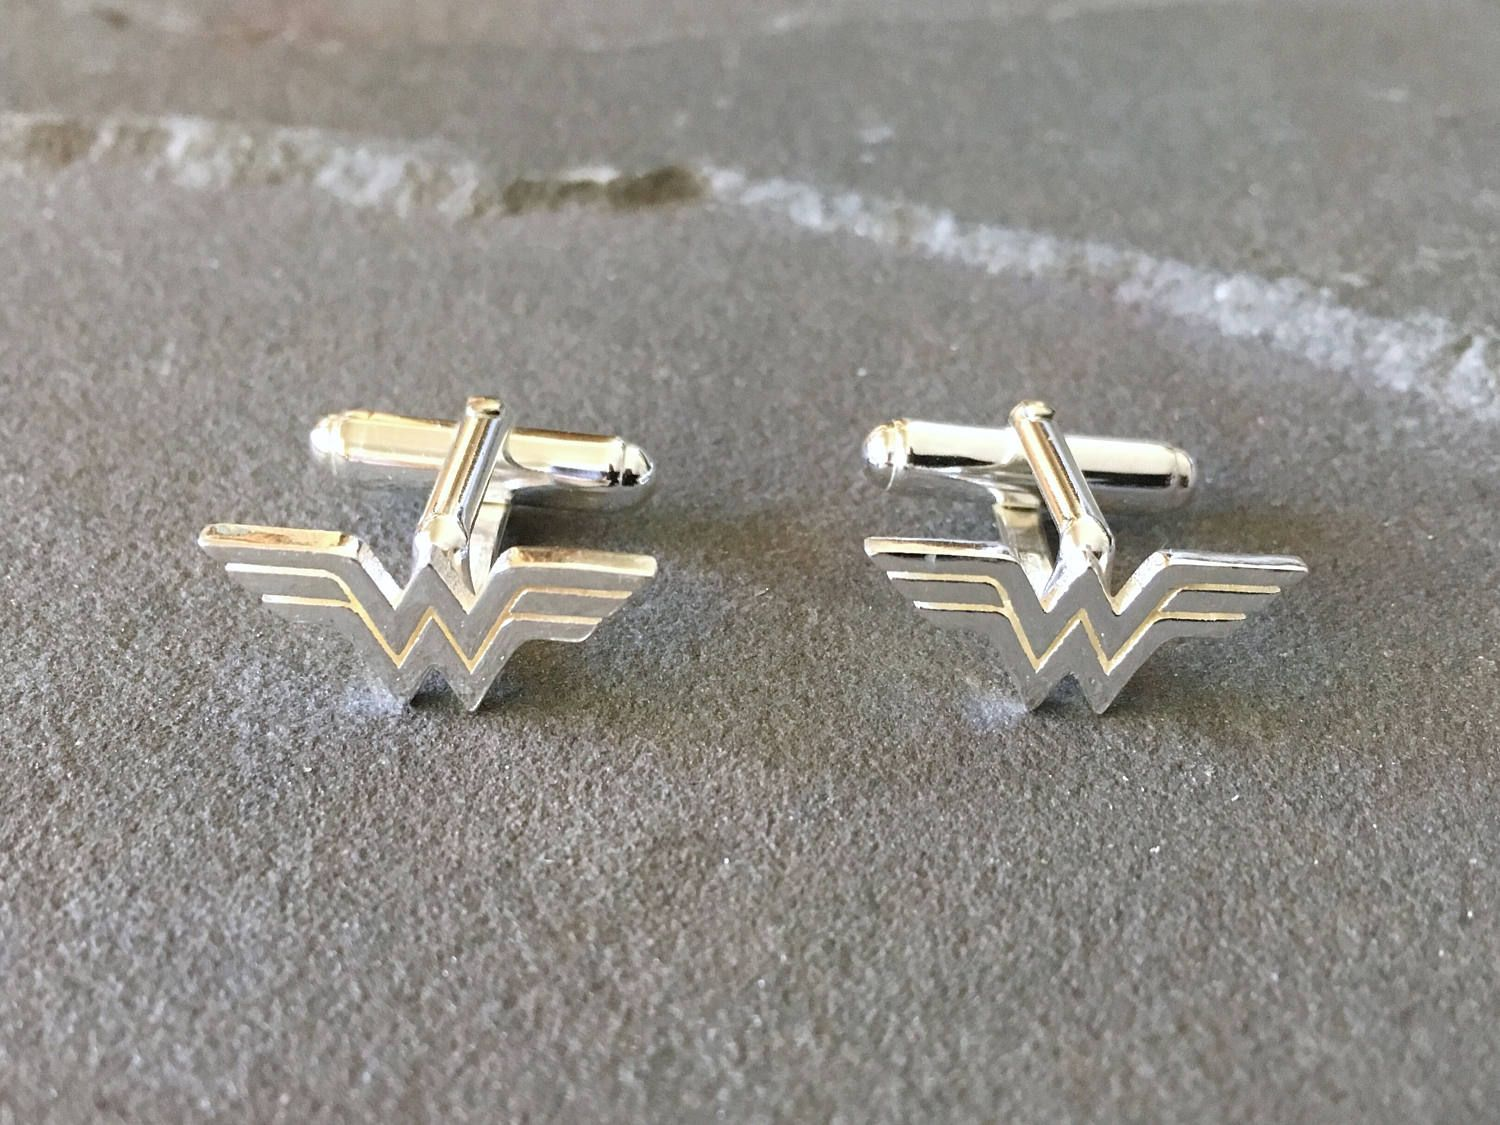 Sterling Silver Wonder Woman Cufflinks, Gifts for Techies, Superhero Gifts, Geeky Gifts, Groom Cufflinks, Superhero Cufflinks, Wonder Woman #superherogifts